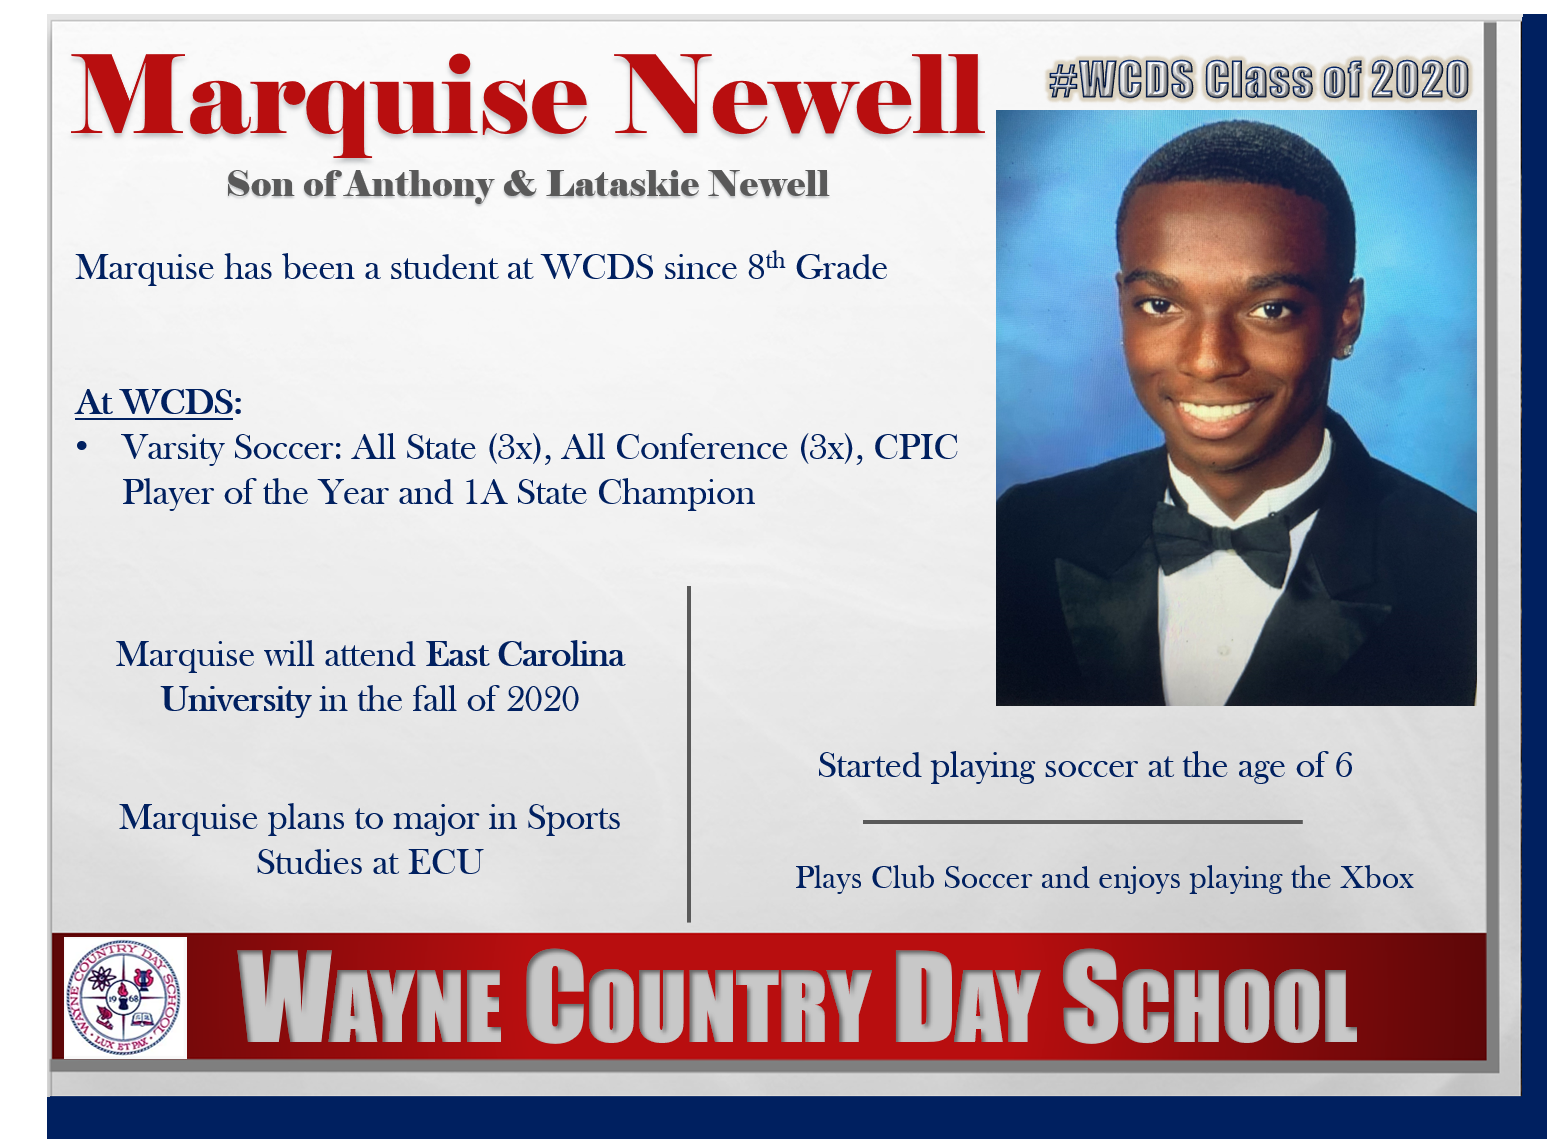 Marquise Newell Profile